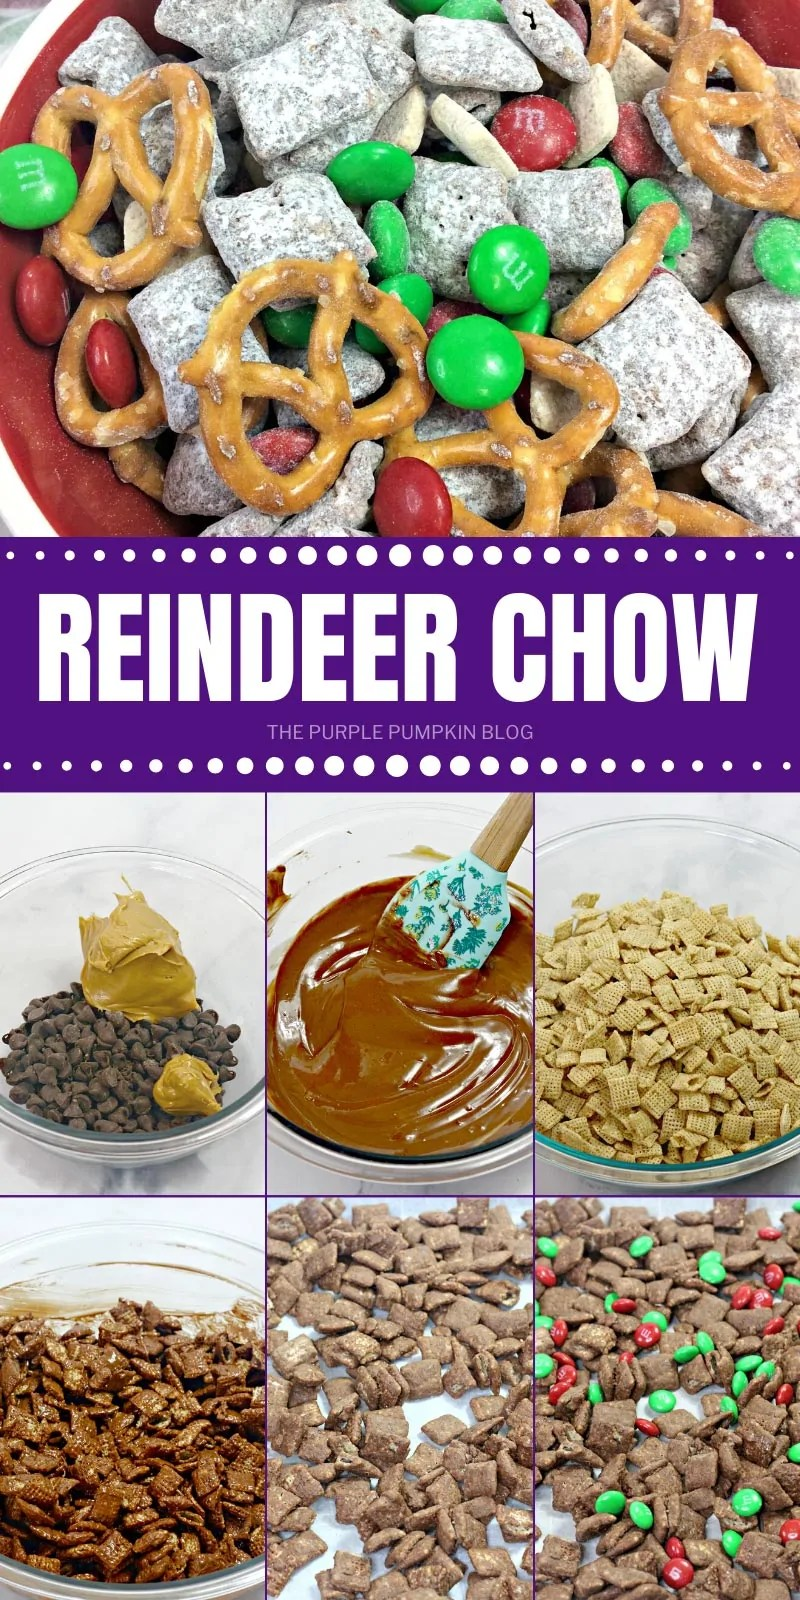 How to make Reindeer chow with step by step photos